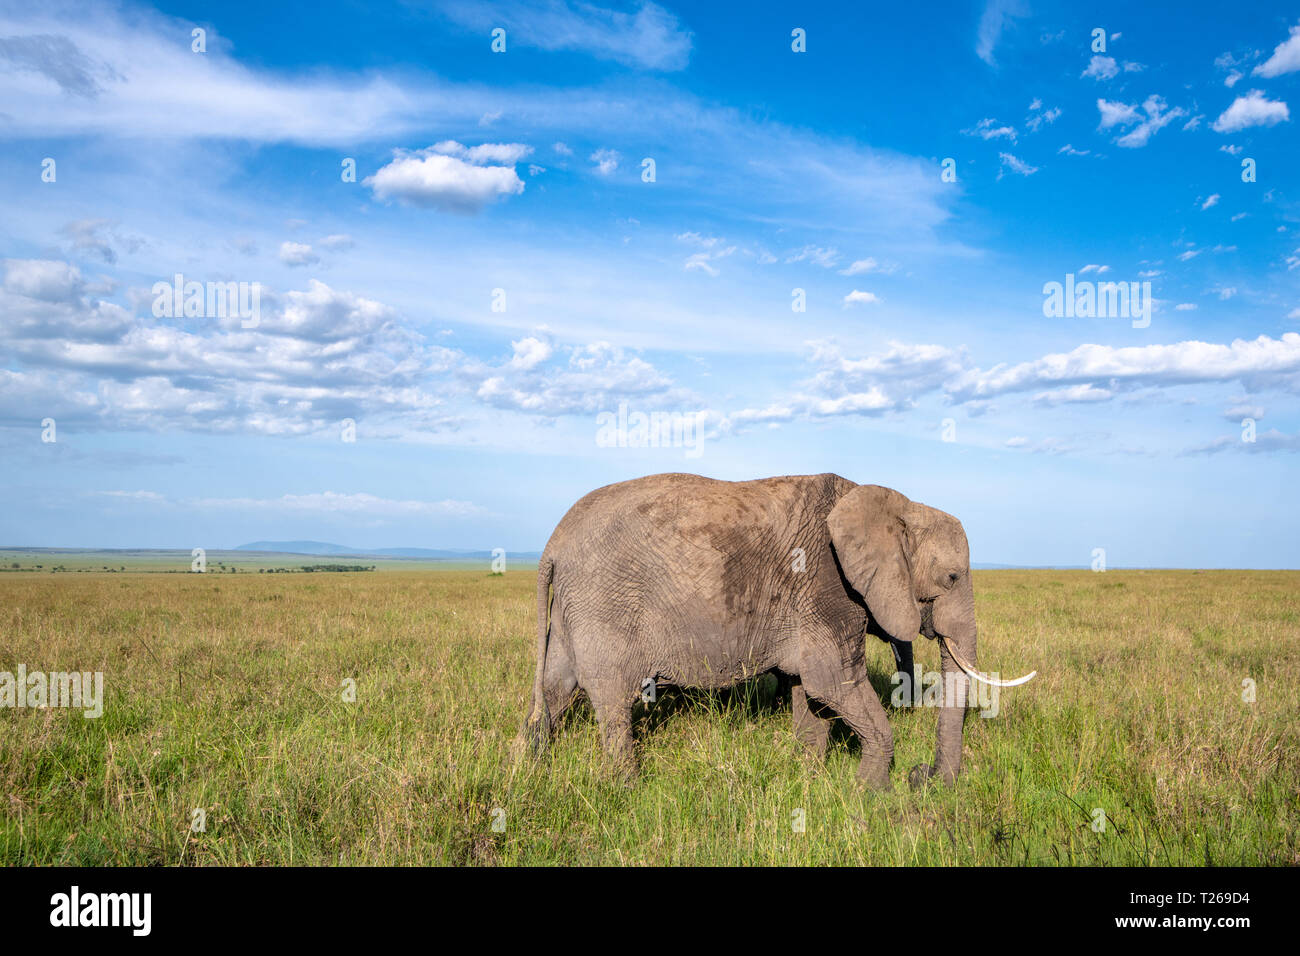 An African bush elephant (Loxodonta africana), aka African savanna elephant in Maasai Mara National Reserve , Kenya Stock Photo